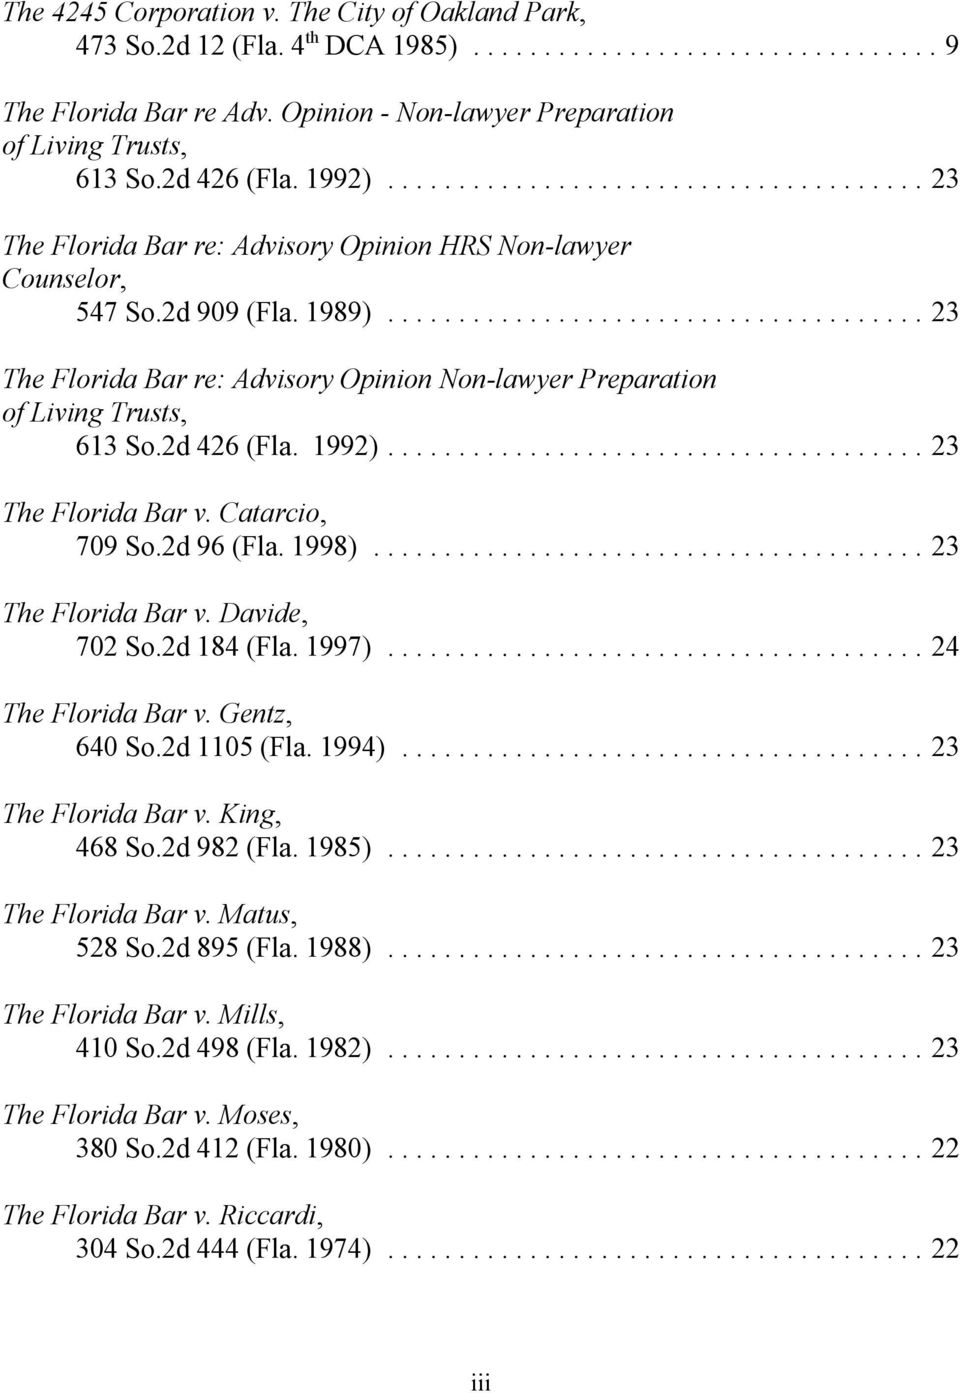 1992)...23 The Florida Bar v. Catarcio, 709 So.2d 96 (Fla. 1998)...23 The Florida Bar v. Davide, 702 So.2d 184 (Fla. 1997)... 24 The Florida Bar v. Gentz, 640 So.2d 1105 (Fla. 1994).